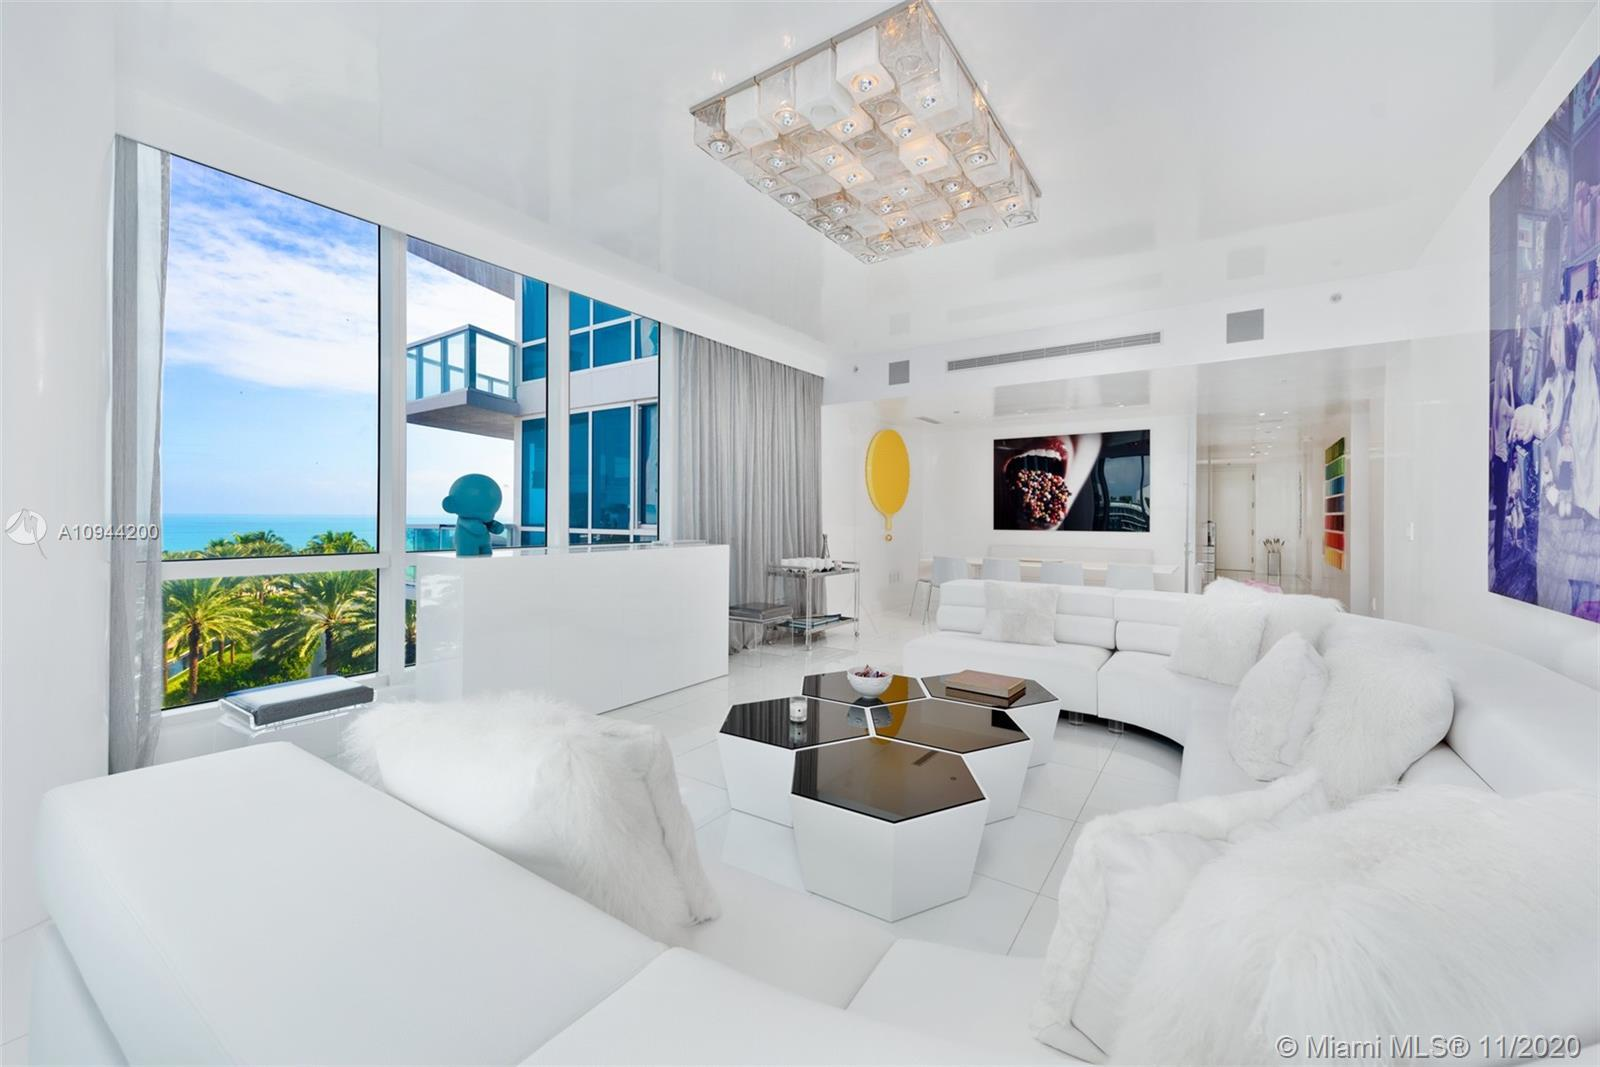 Be wowed the moment you enter this glamorous three-bedroom, white glass home in the sky, in South Be